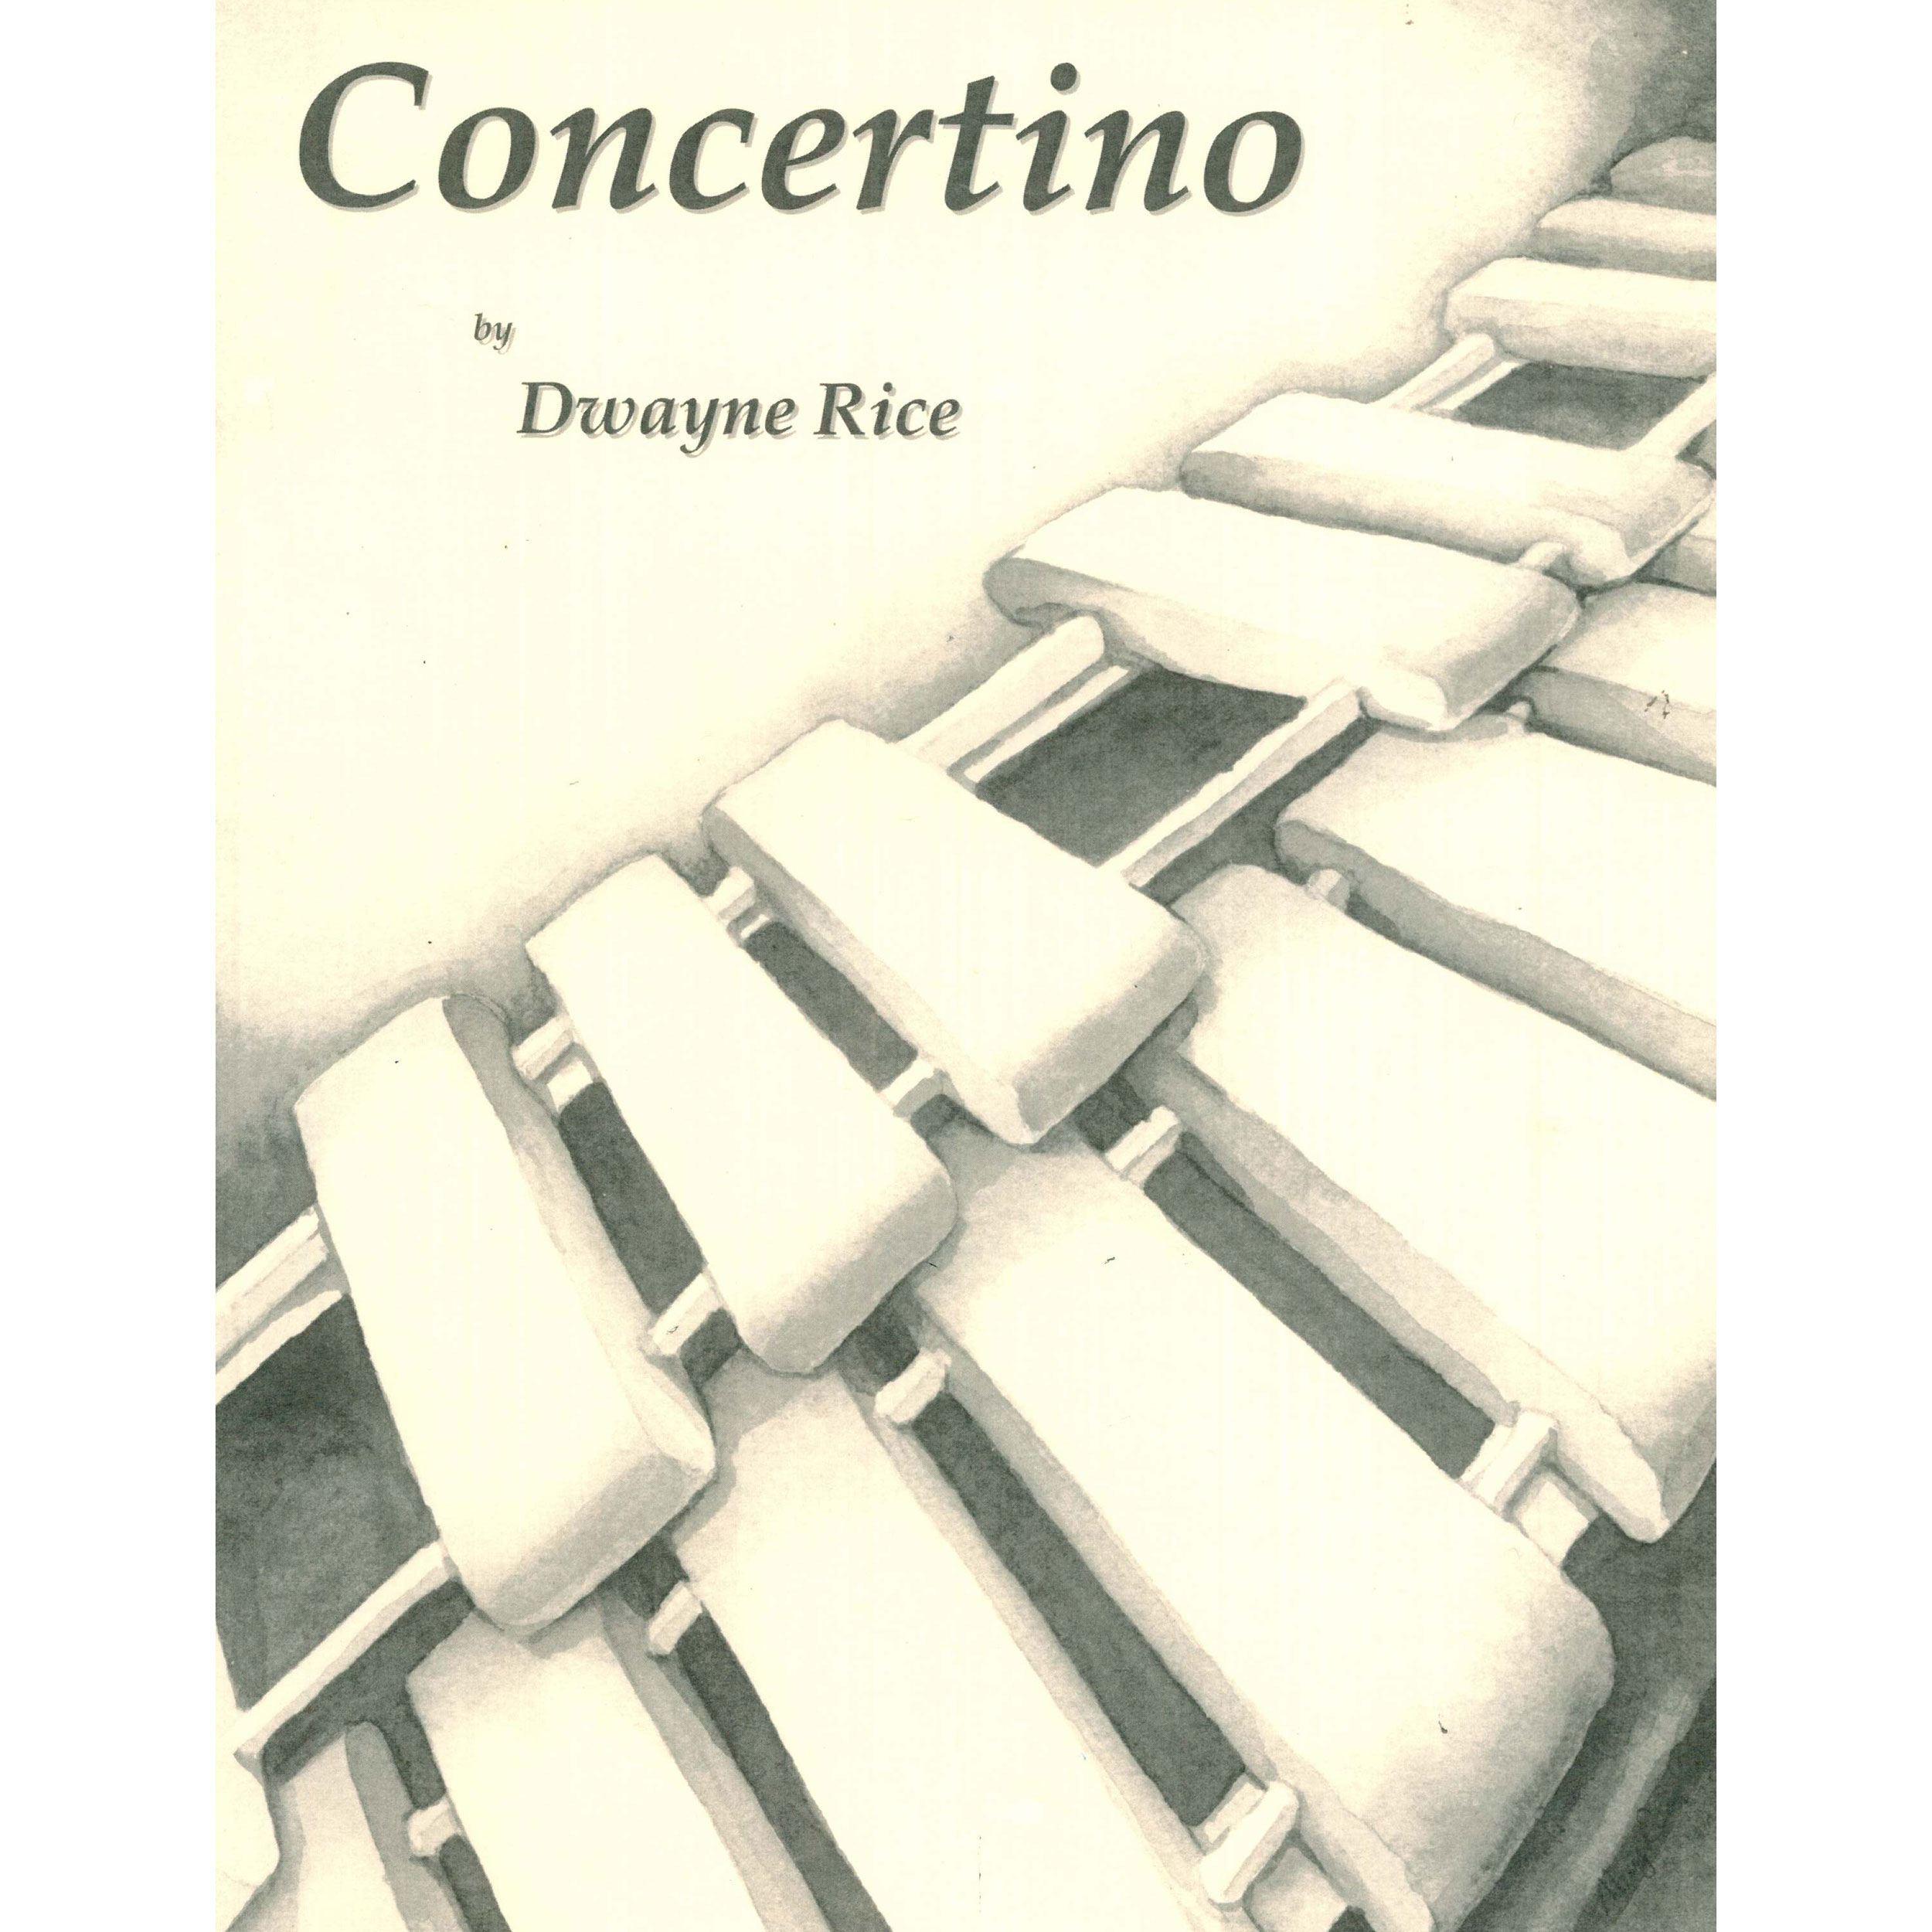 Concertino for Marimba by Dwayne Rice